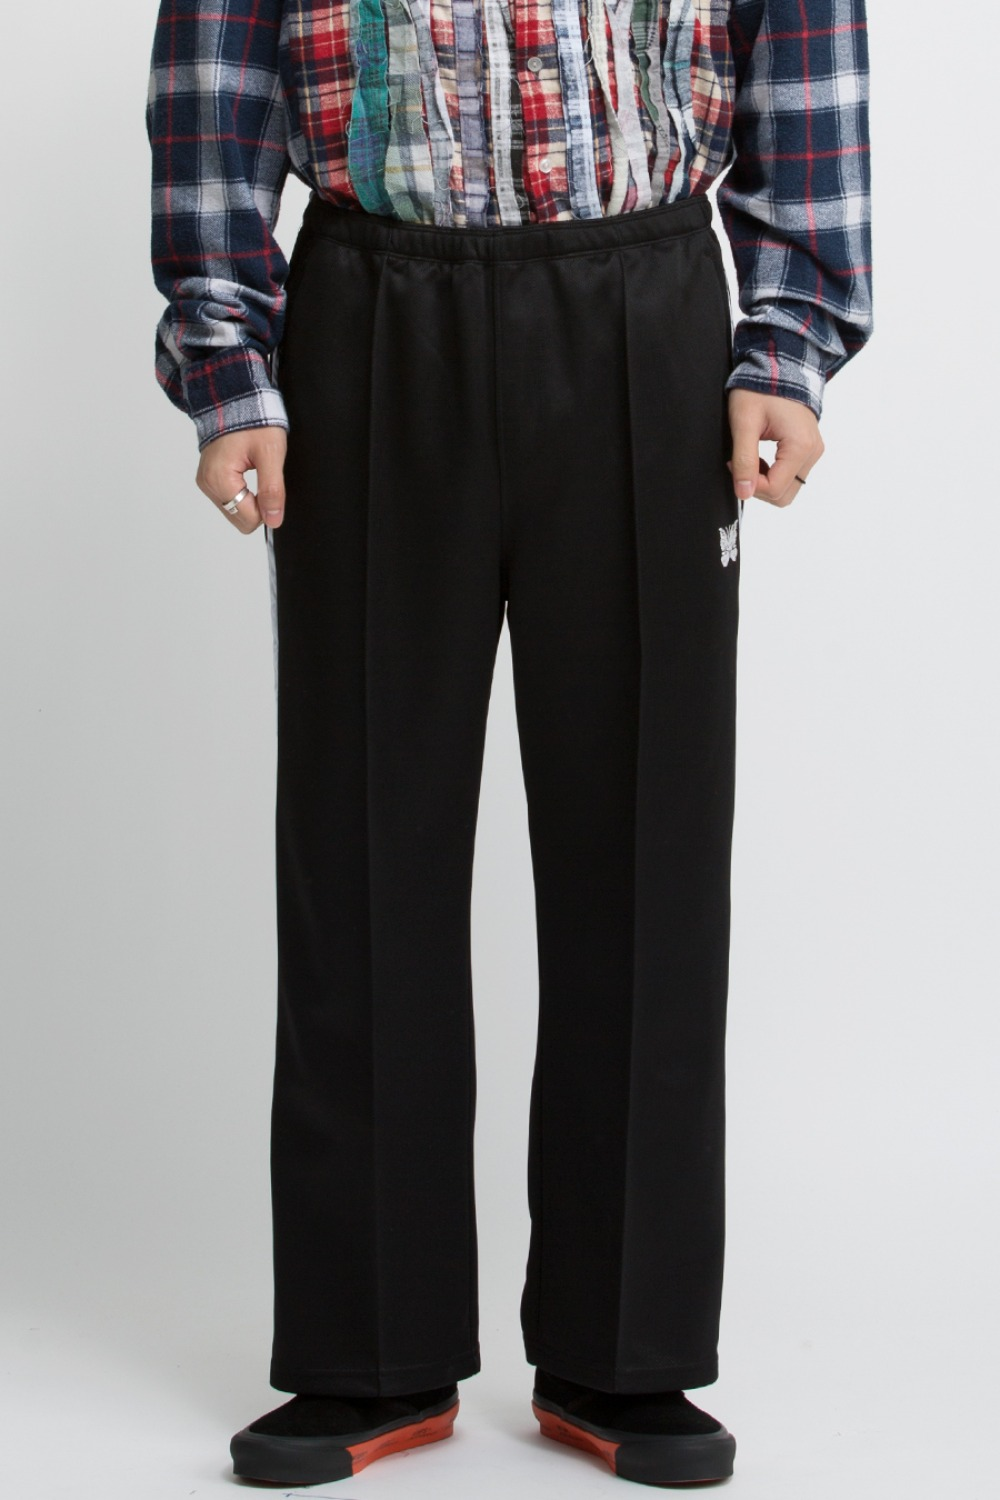 SIDE LINE SEAM POCKET PANT BRIGHT POLY JERSEY BLACK/WHITE